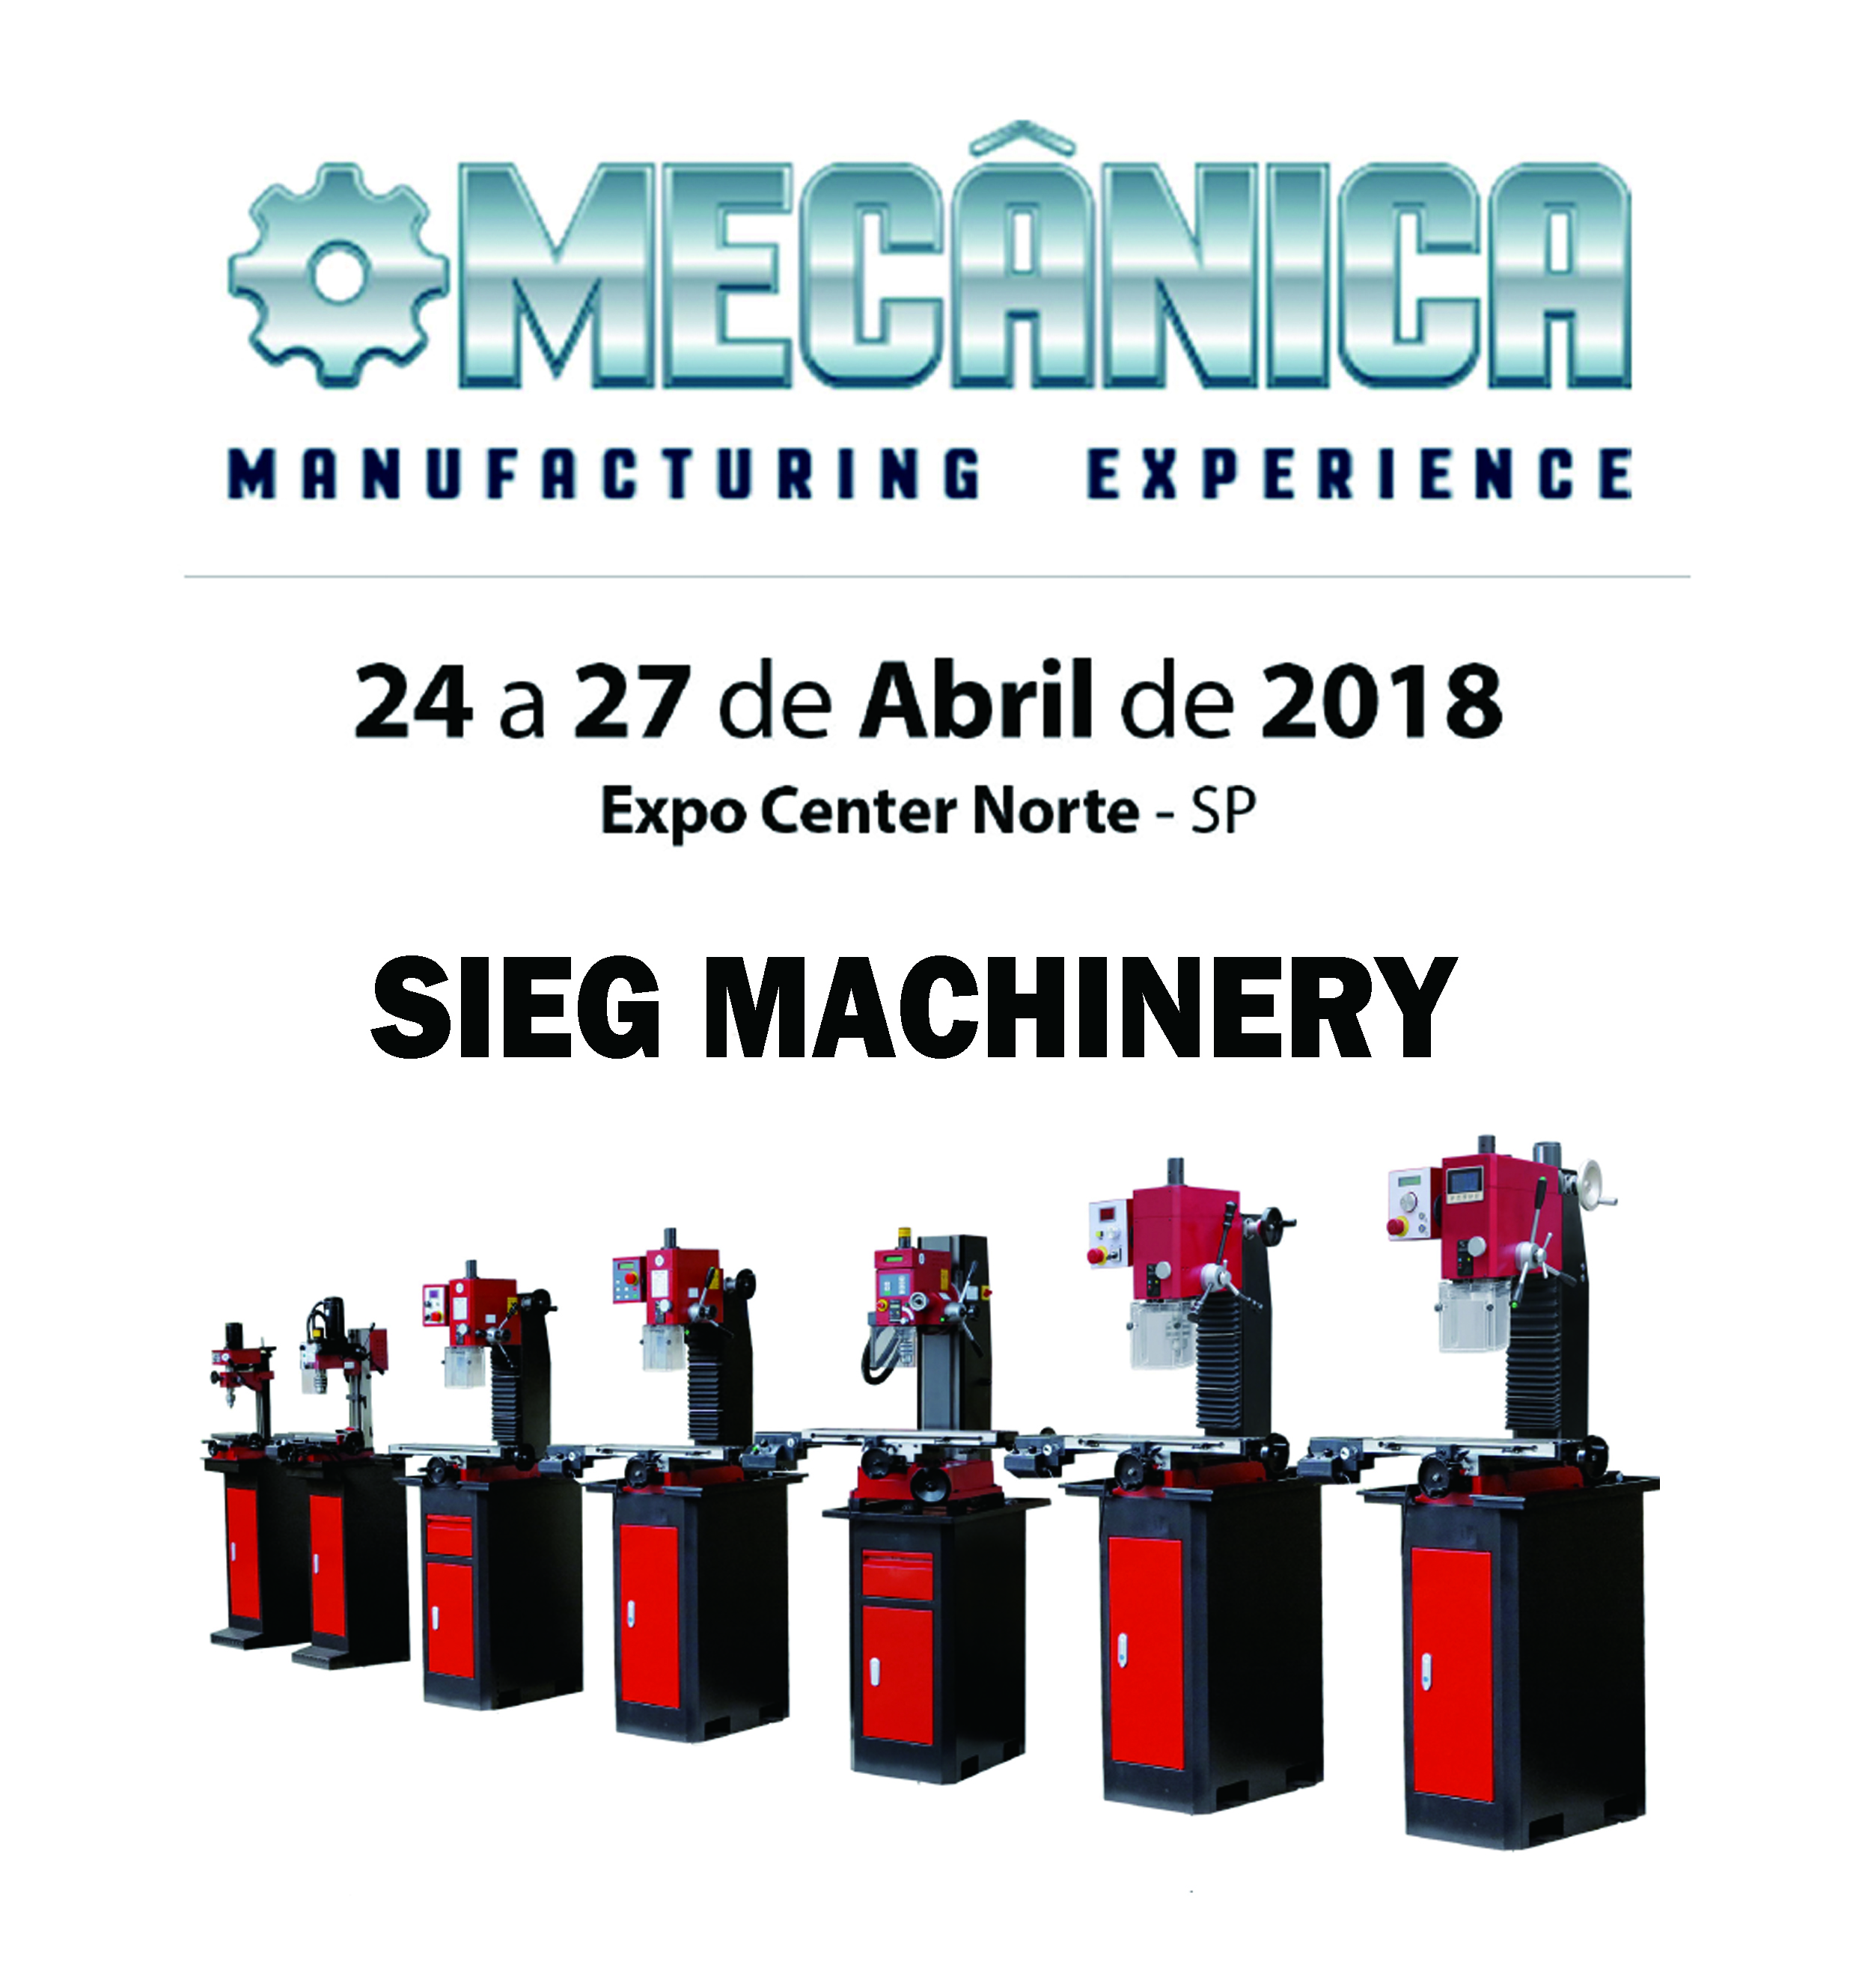 Welcome To Our Booth on Brazilian Machinery & Industrial Equipment Fair (MECANICA 2018)